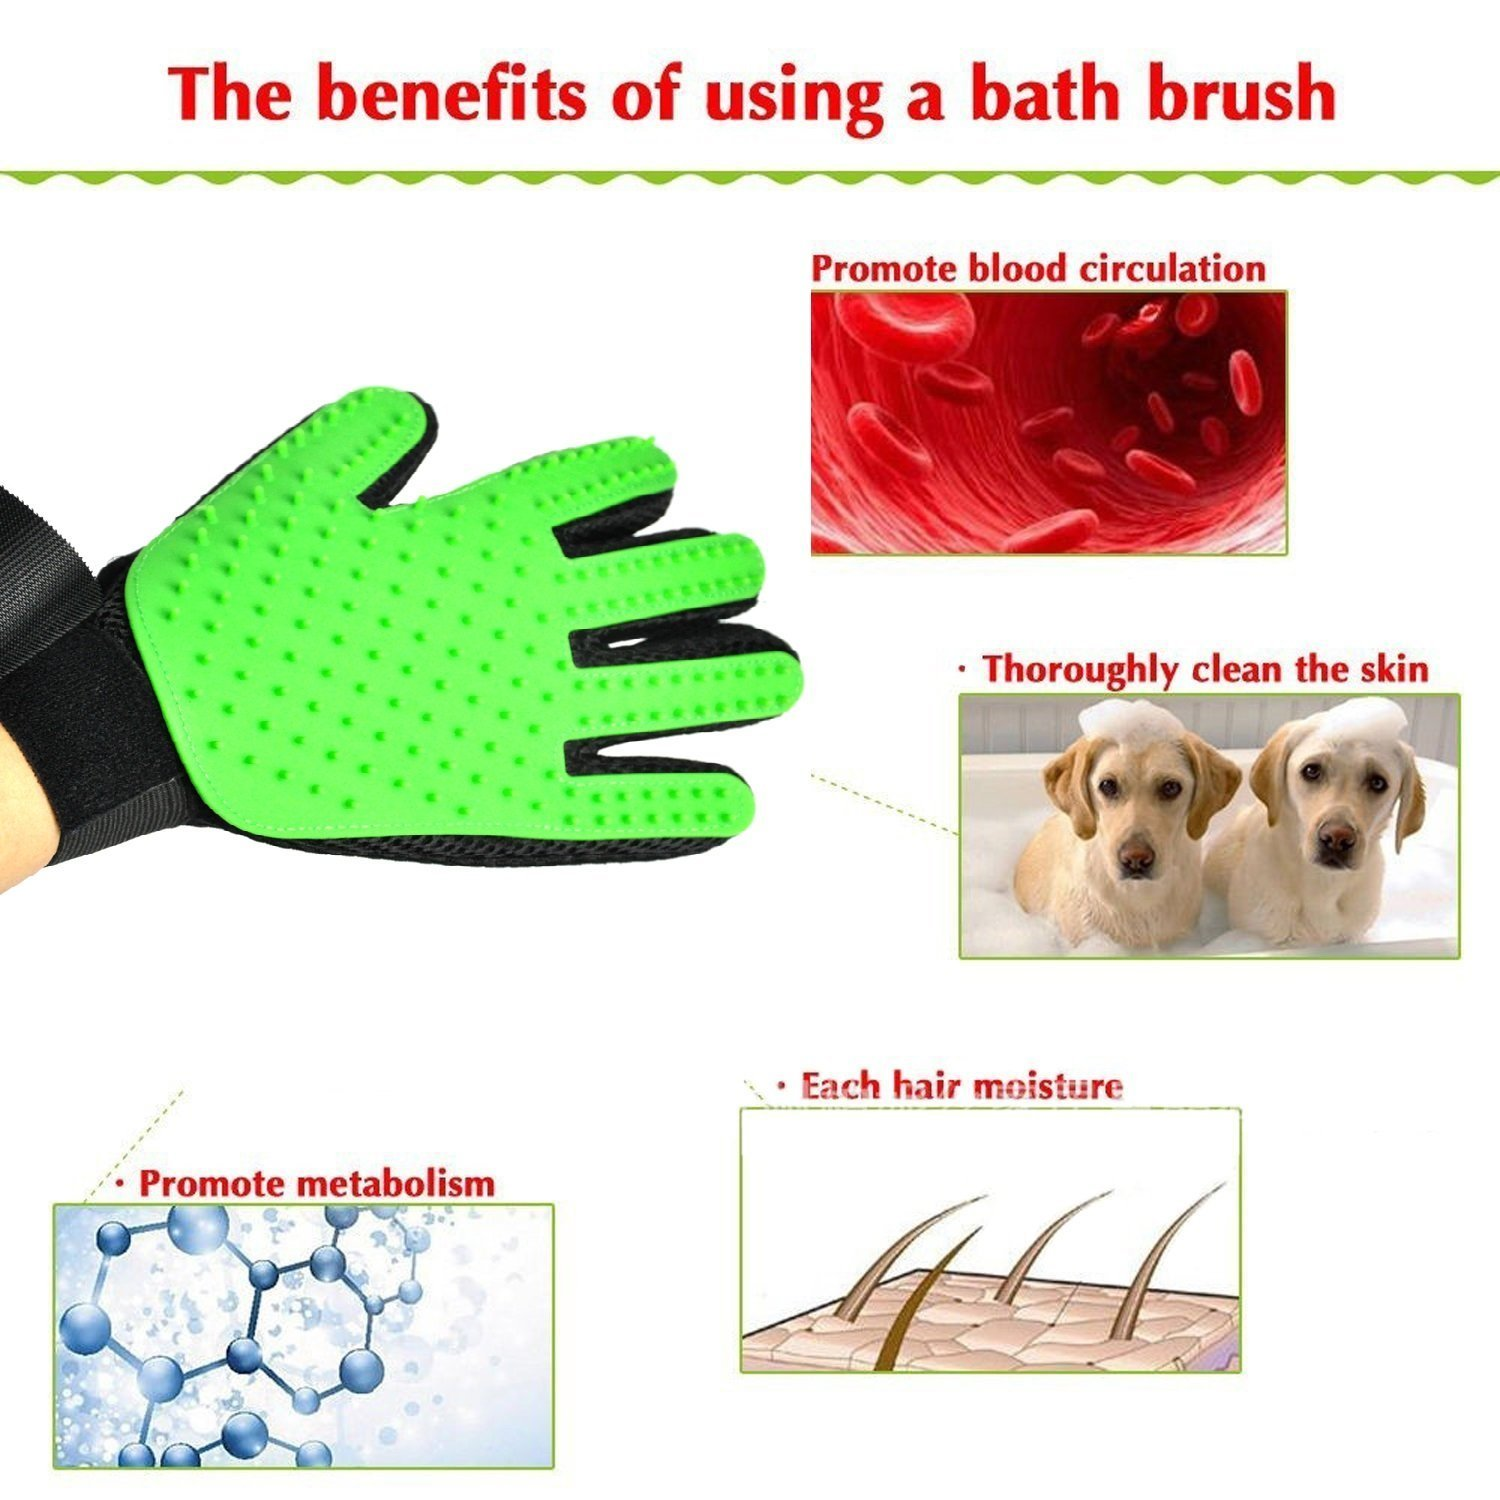 Petbob Pet Grooming Glove,Pet Deshedding Glove,Soft Gentle Pet Bath Massage Mitt,Silicone Pet Dematting Hair Removal Brush Glove Comb, For Long and Short Haired Dogs Cats Bunnies (green) by petbob (Image #2)